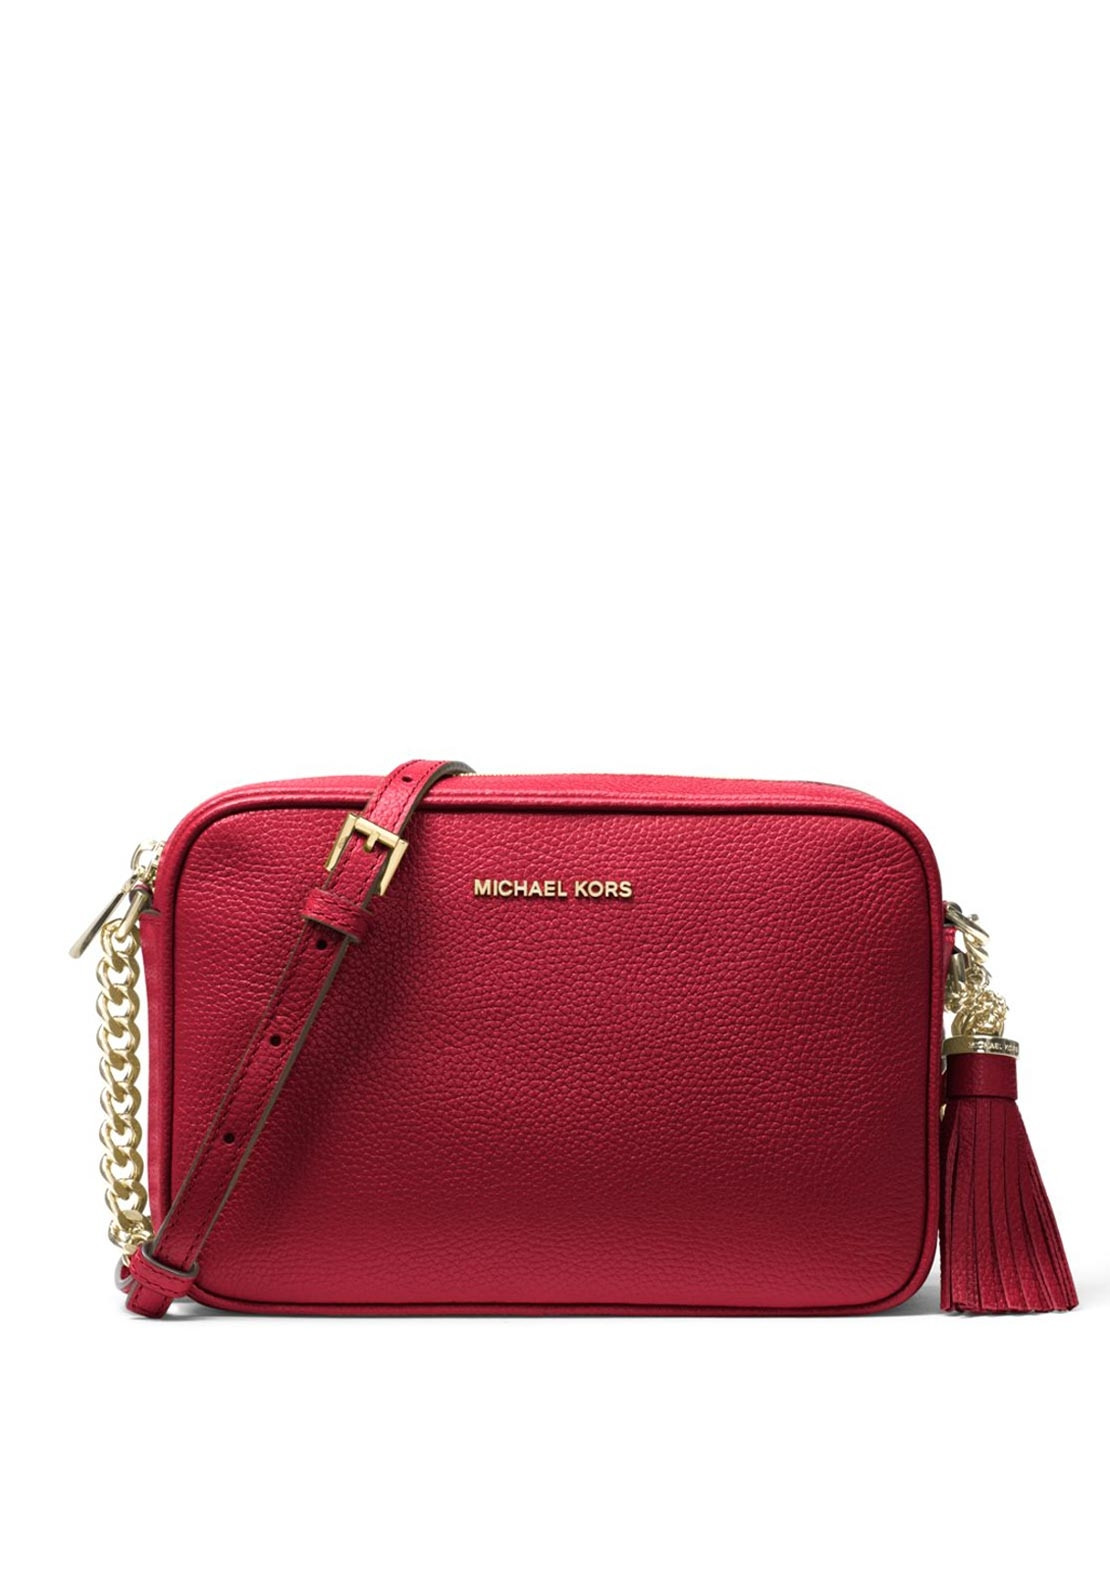 f5632265490c MICHAEL Michael Kors Ginny Leather Crossbody Bag, Maroon. Be the first to  review this product